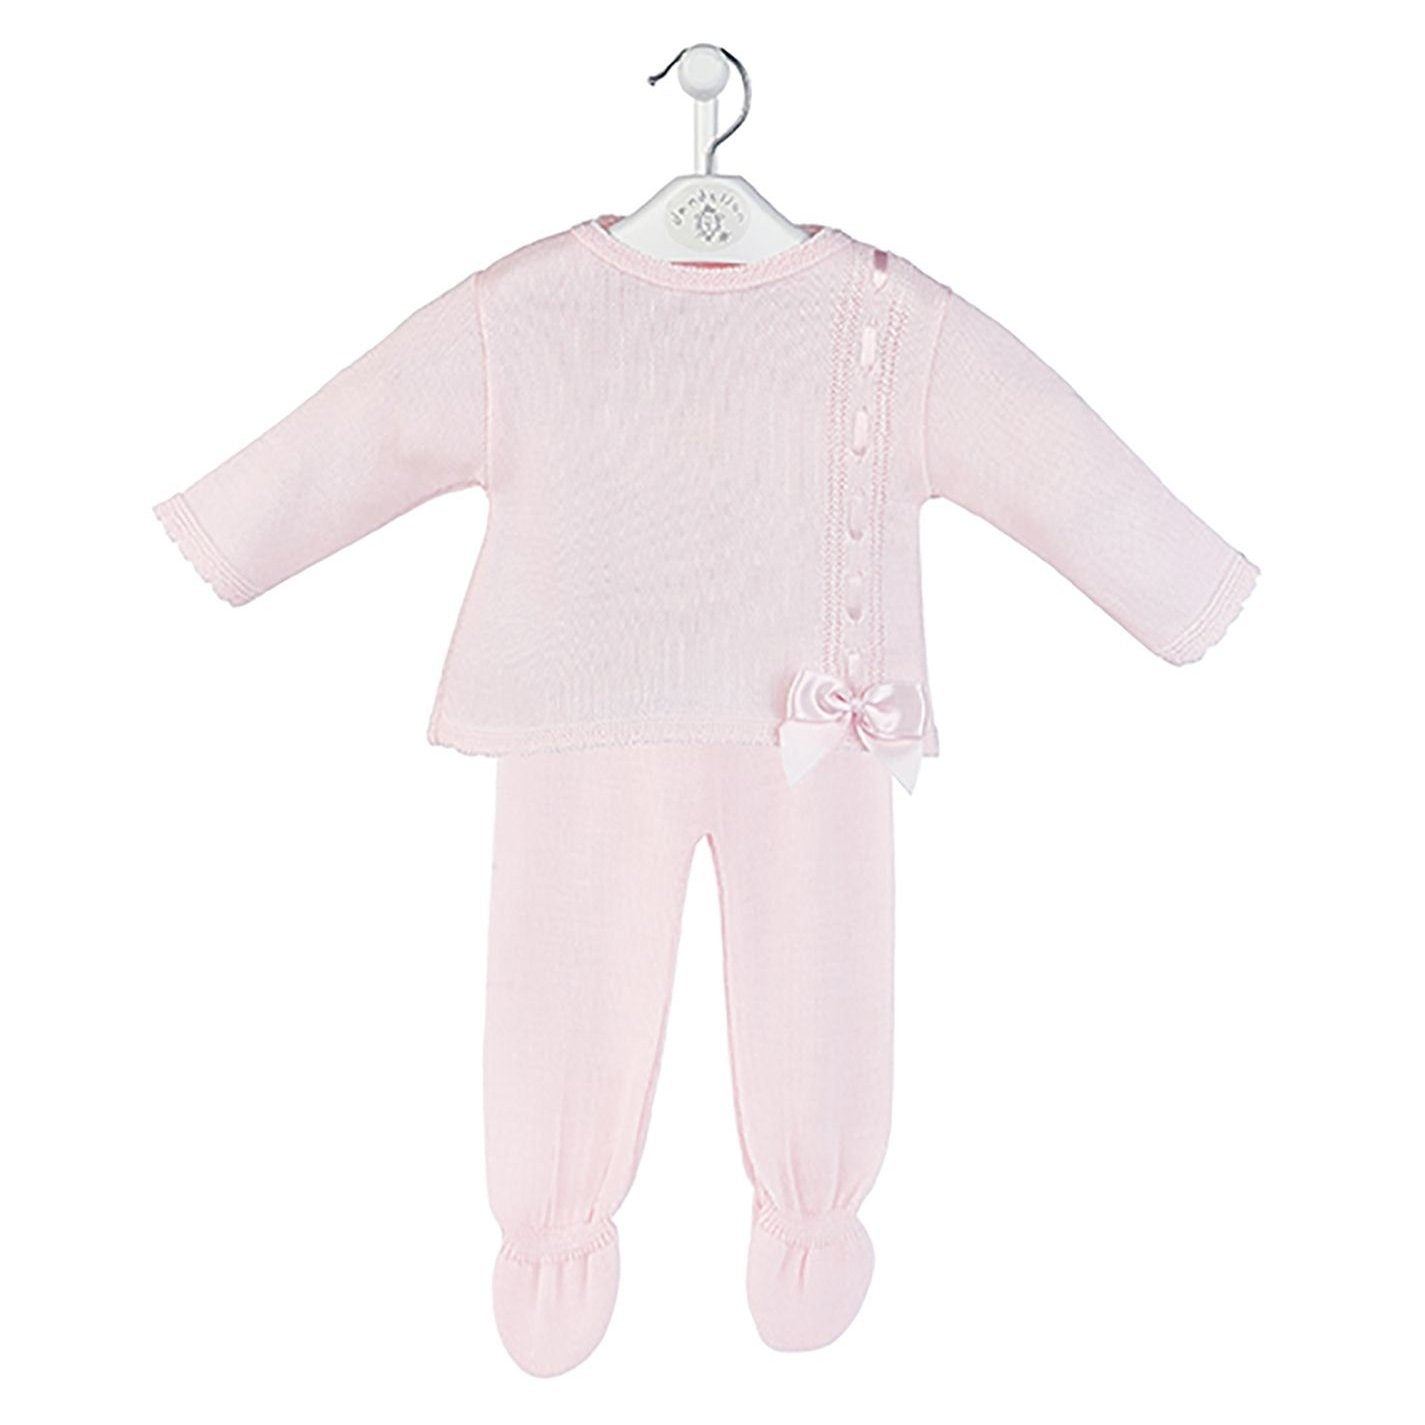 Dandelion Pink Knitted Bow Top & Leggings | Millie and John